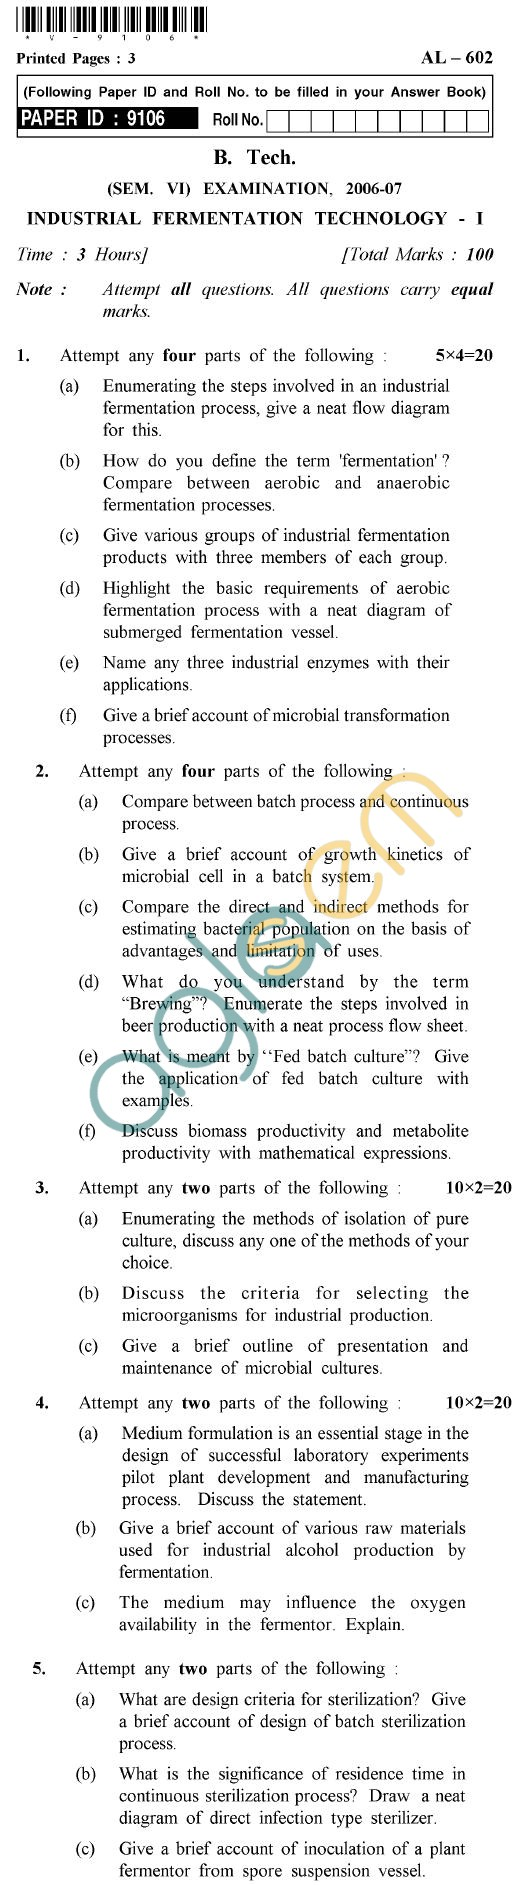 UPTU B.Tech Question Papers - AL-602 - Industrial Fermentation Technology-I